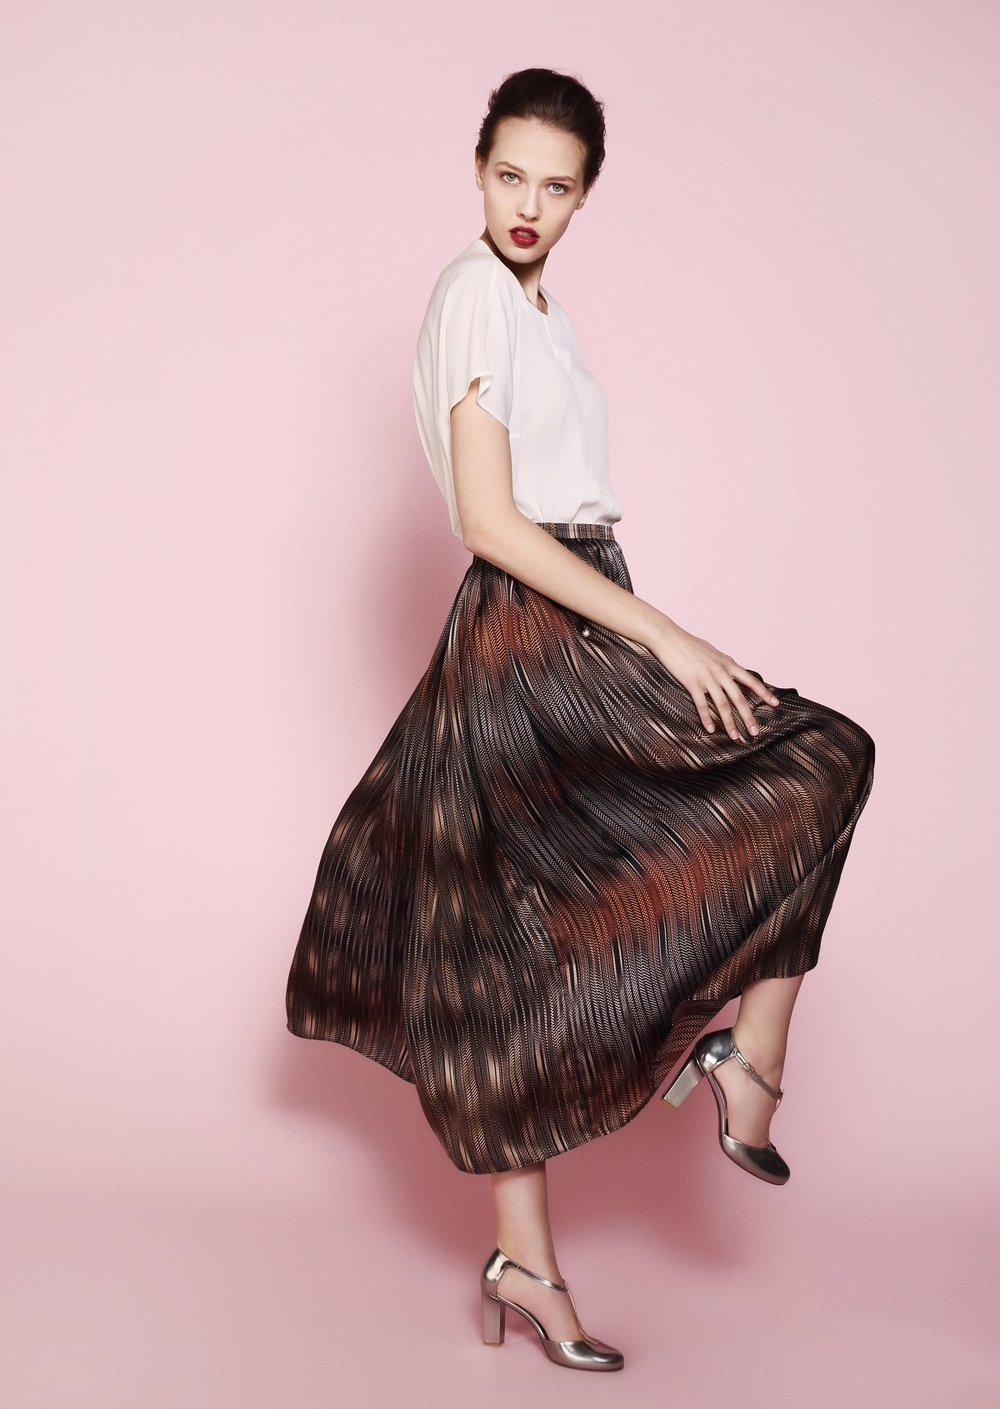 1. The Midi Skirt  - Look no further. This Valentina midi length skirt is made of the softest silk we could possibly find. The length is perfect to go with anything, from kitty heel to block-heeled ankle boot. The warm shades of chocolate, coffee and latte are so easy to mix with the color palette of the new season. We would try it with burgundy, forest green and ivory. This piece will help you to transition from summer to fall in the most versatile way. #lovemeforever #softpower #versatility